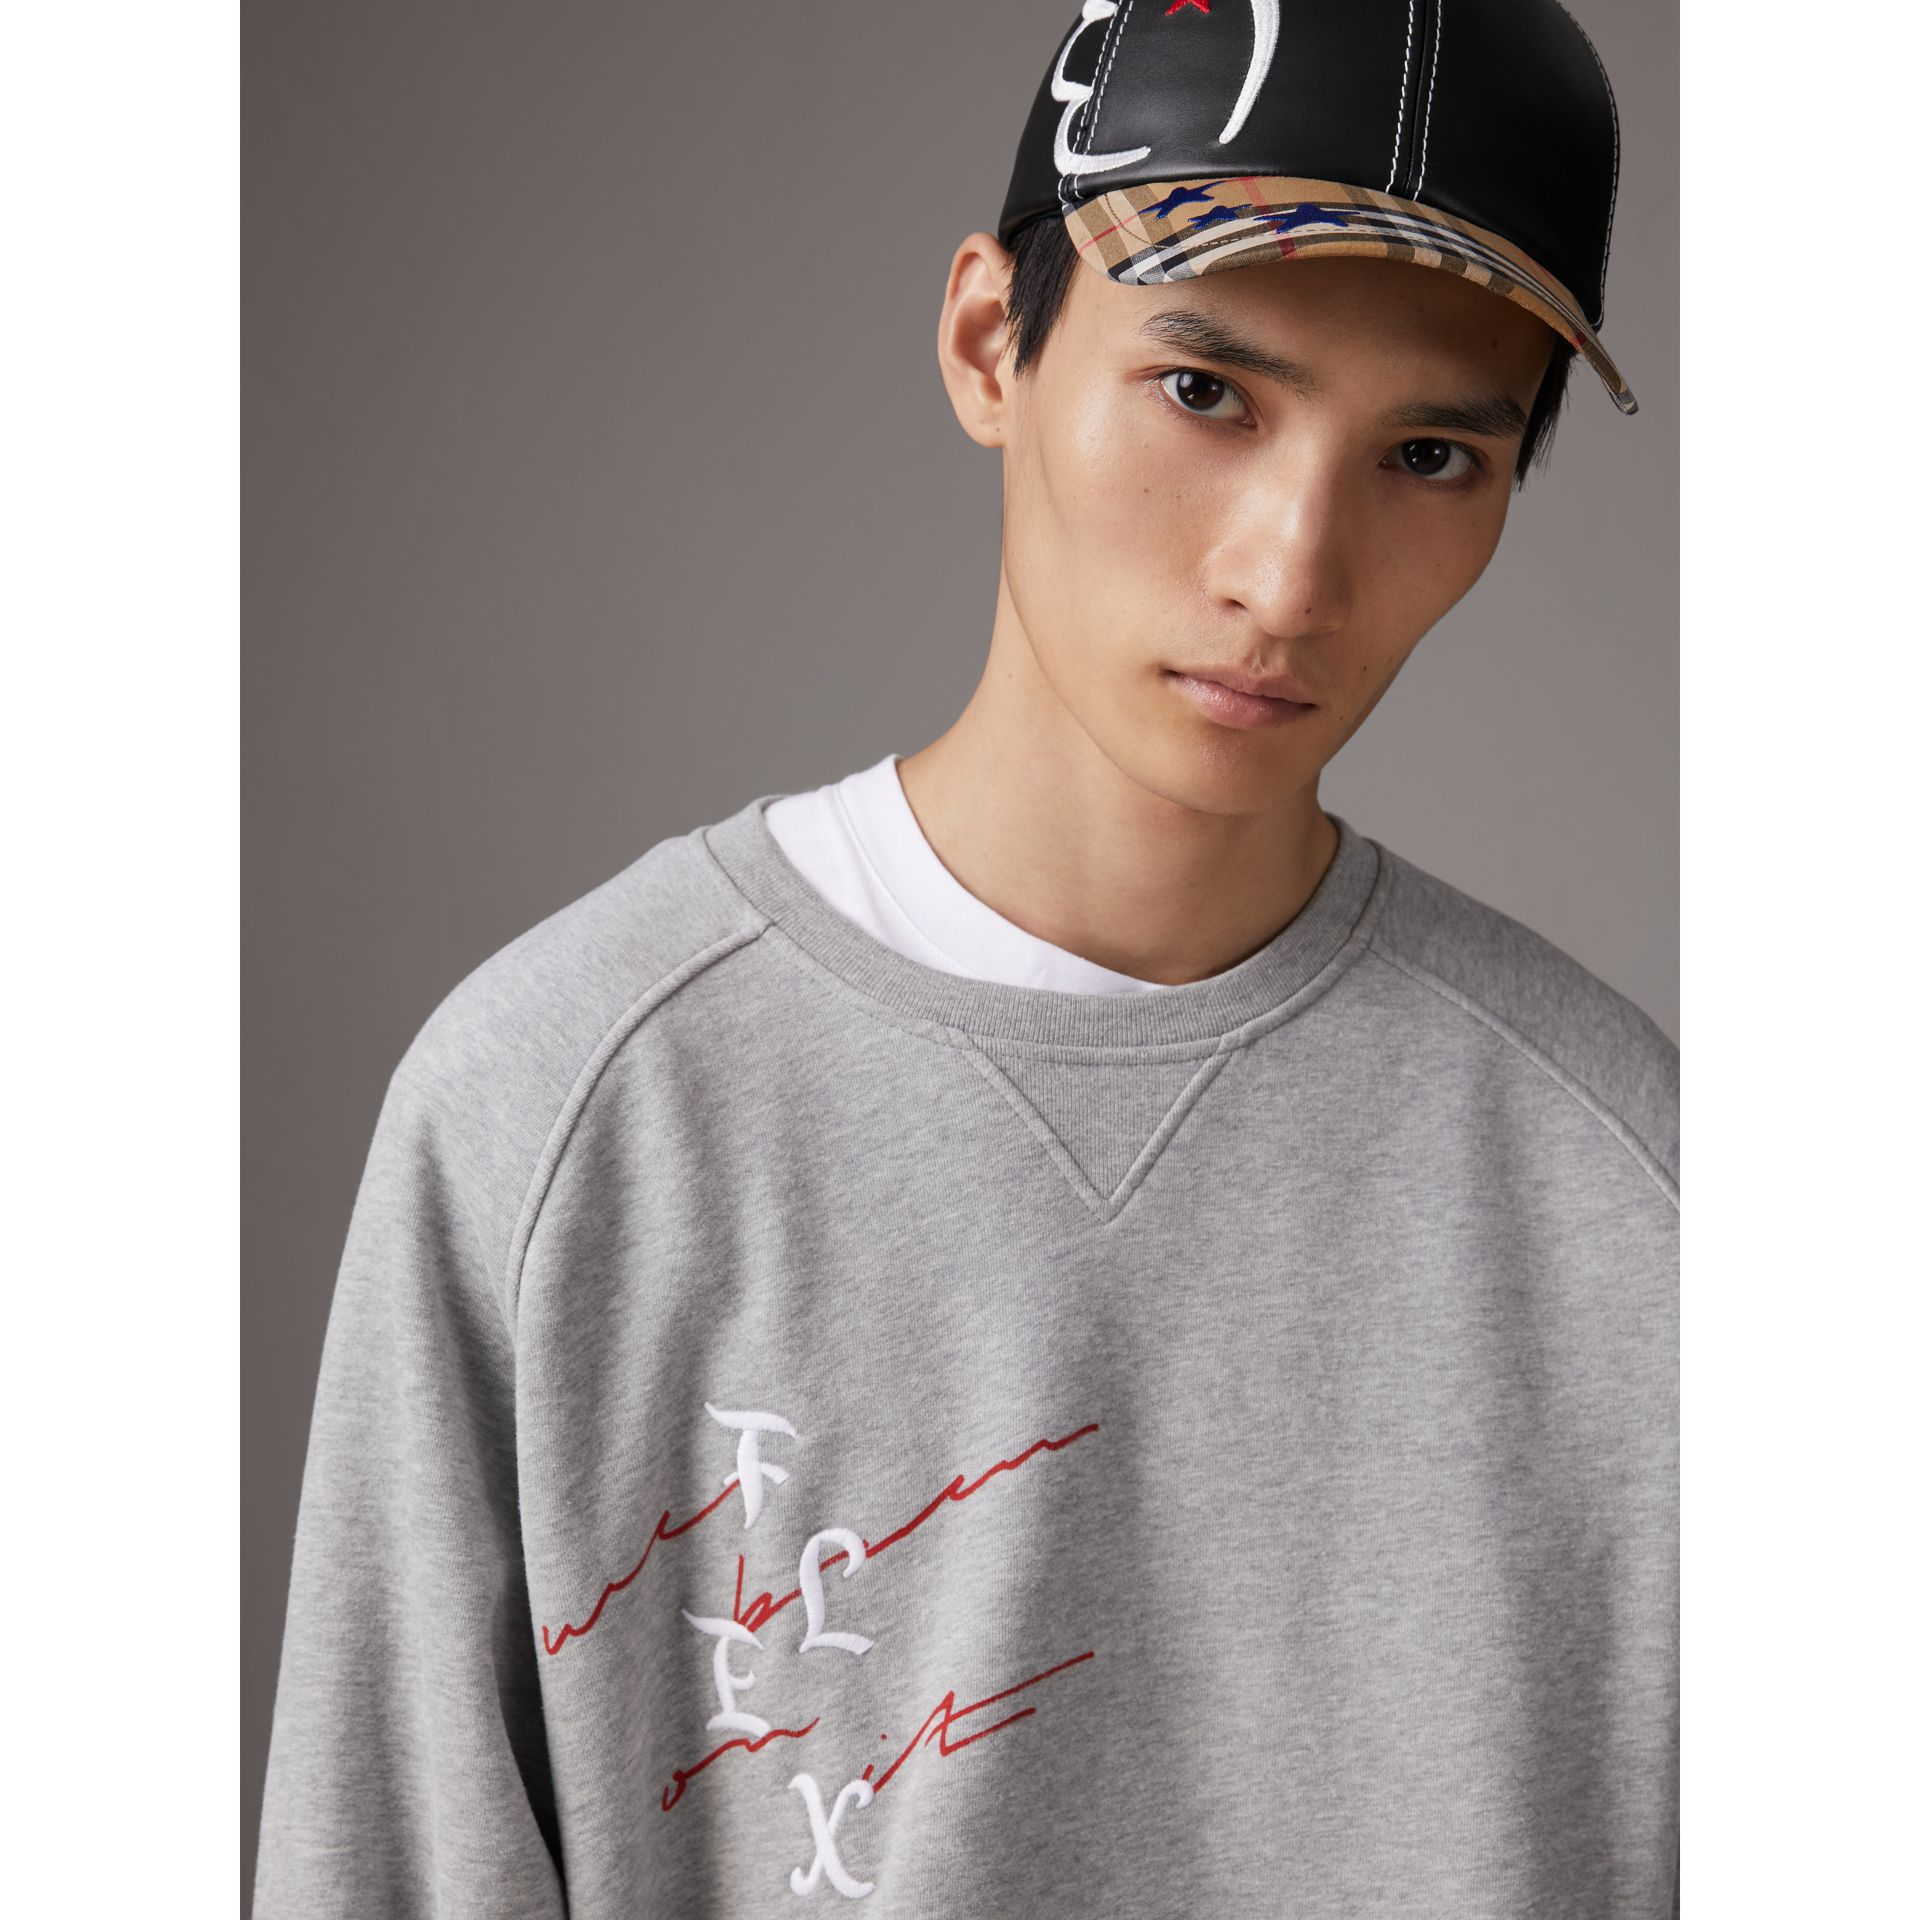 Burberry x Kris Wu Graphic Motif Sweatshirt in Pale Grey Melange - Men | Burberry United States - gallery image 1